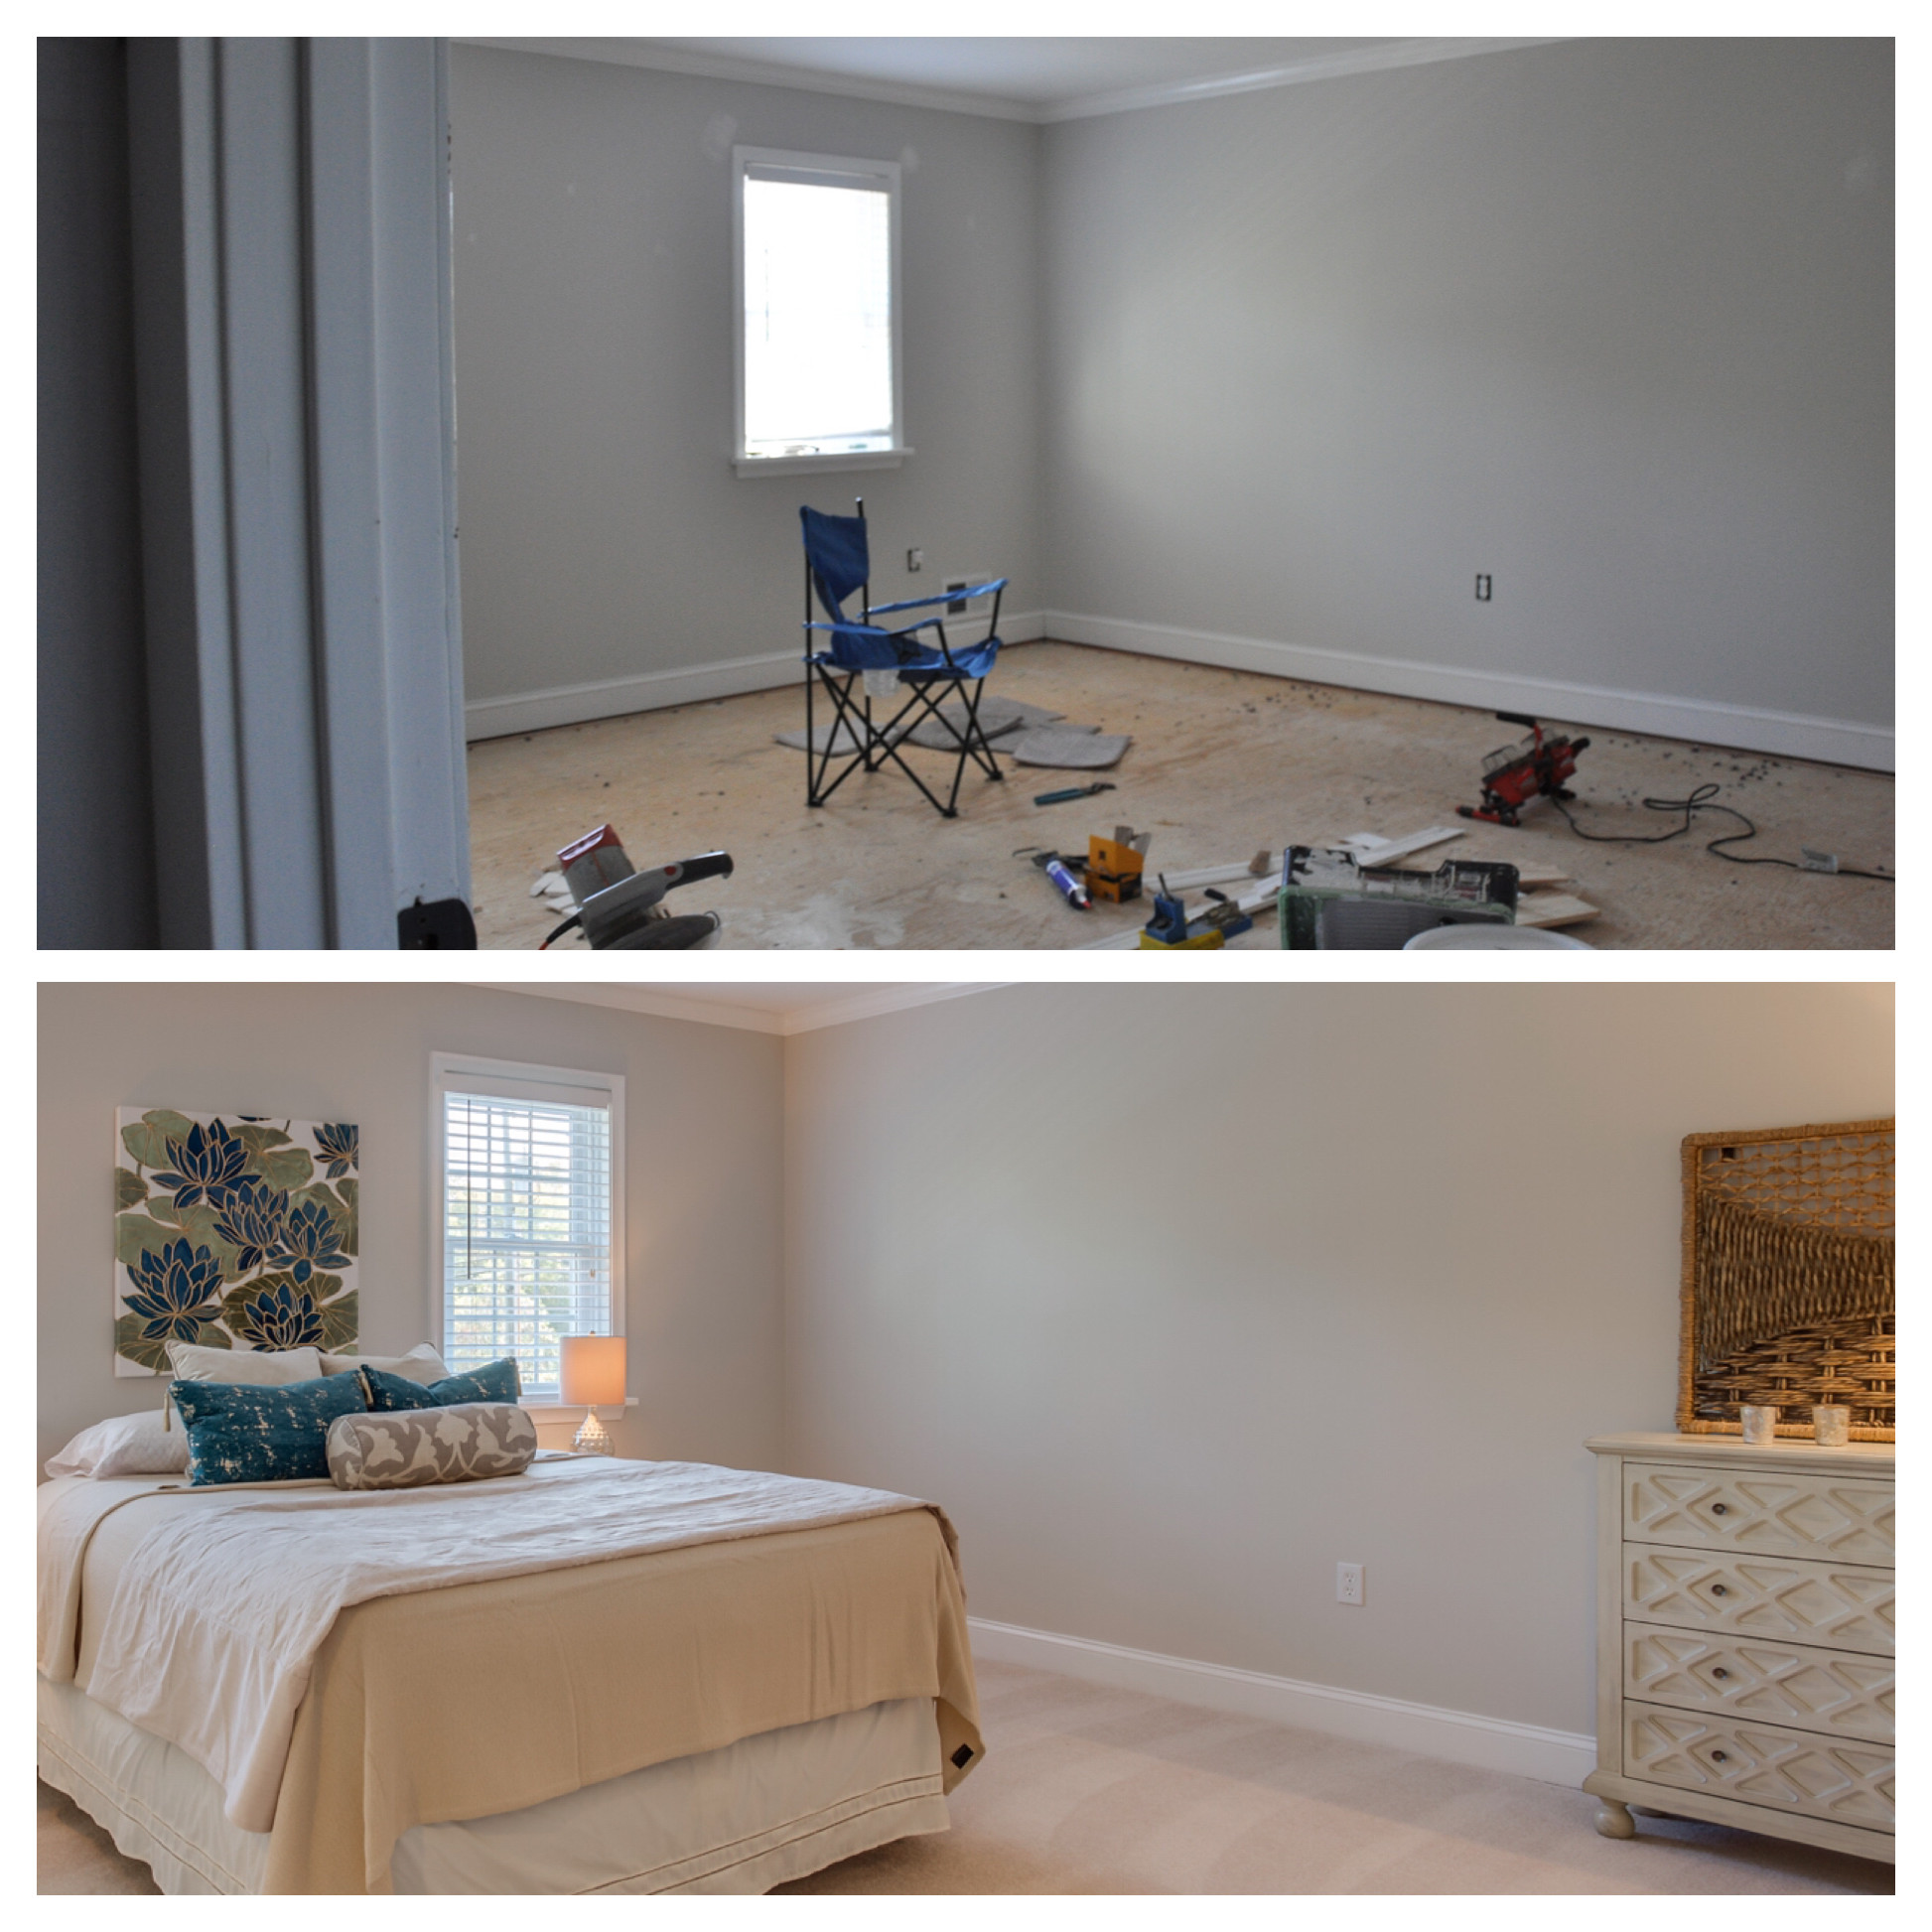 Bedroom: Before and After